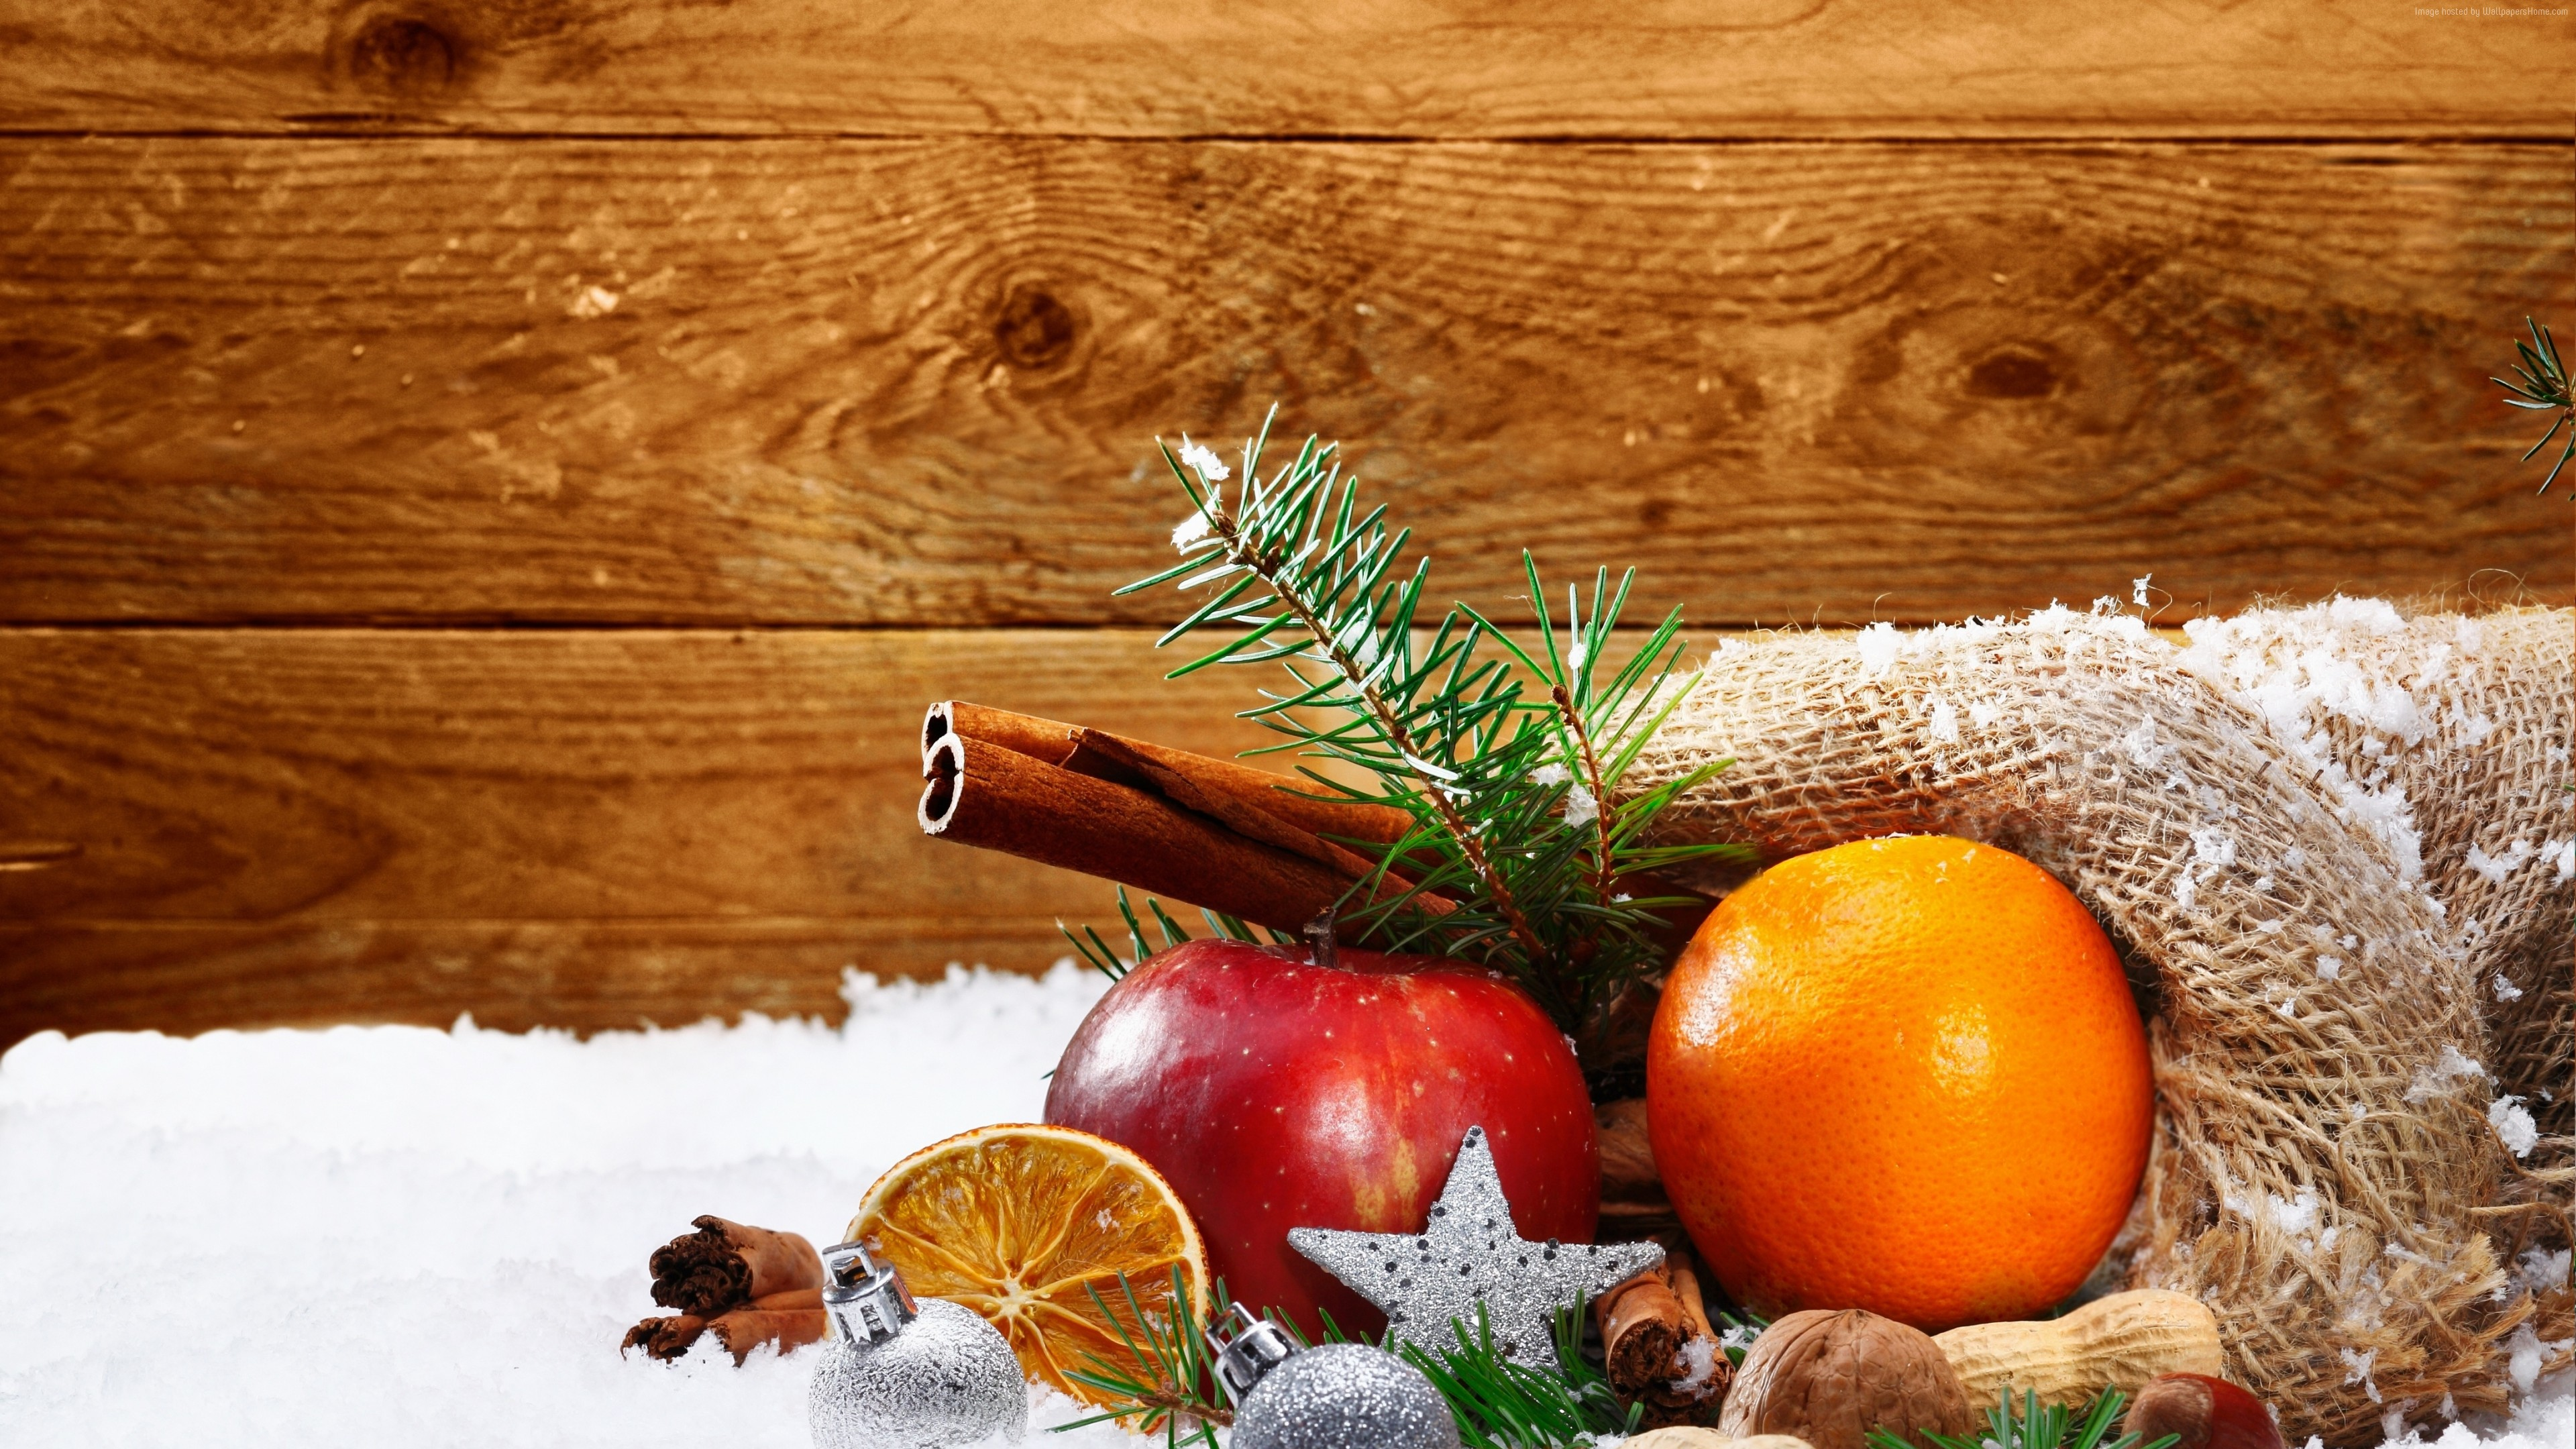 Wallpaper Christmas, New Year, snow, orange, apple, cinnamon, 4k, Holidays